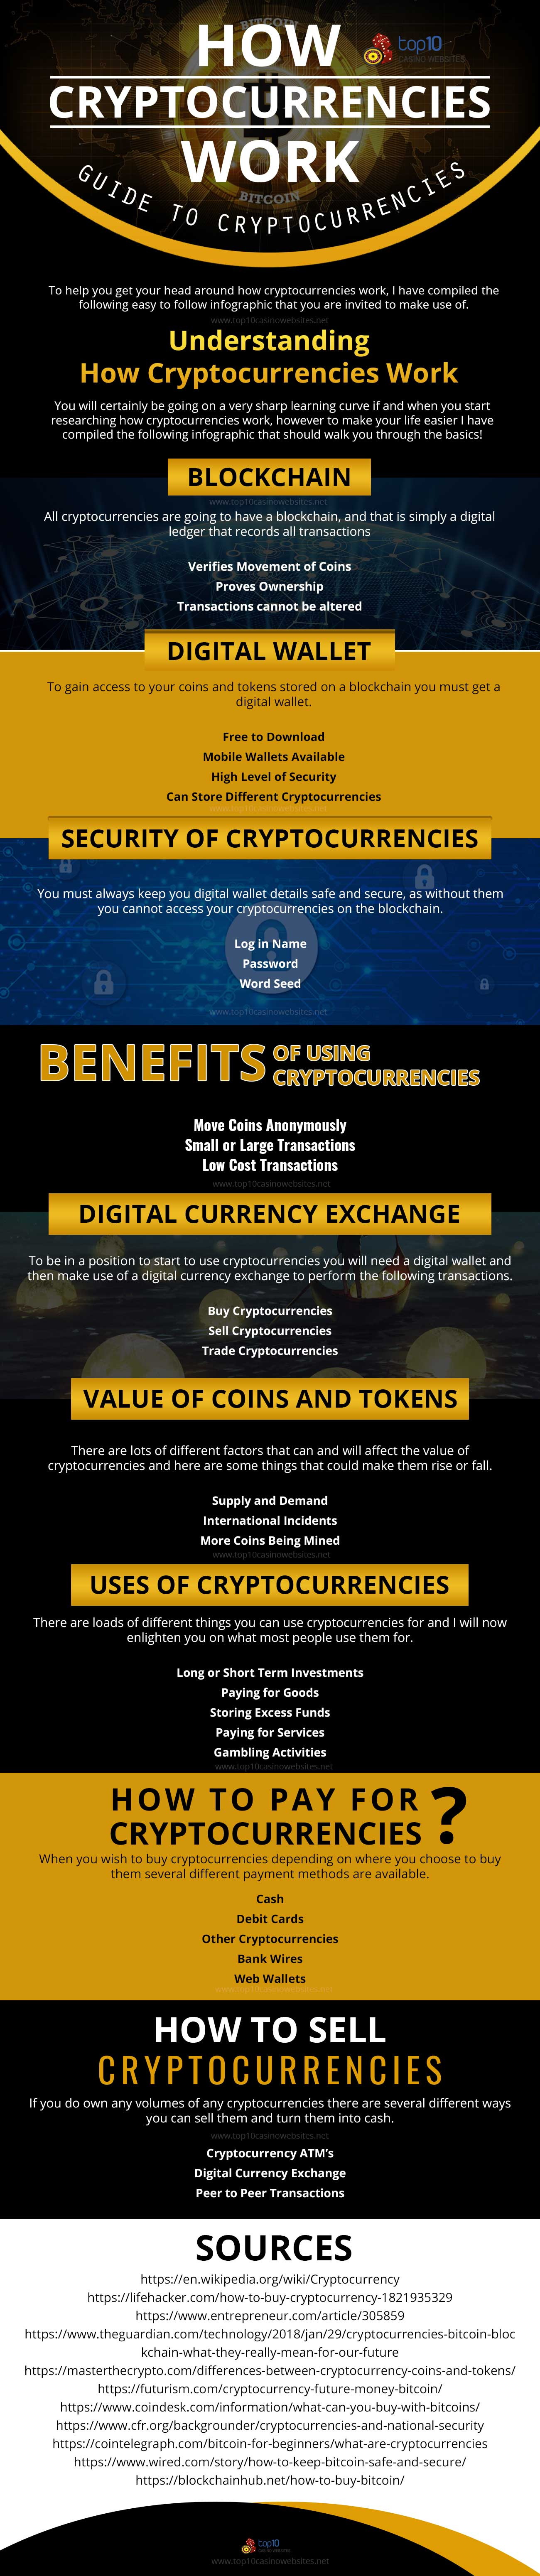 Infographic on Understanding How Cryptocurrencies Work